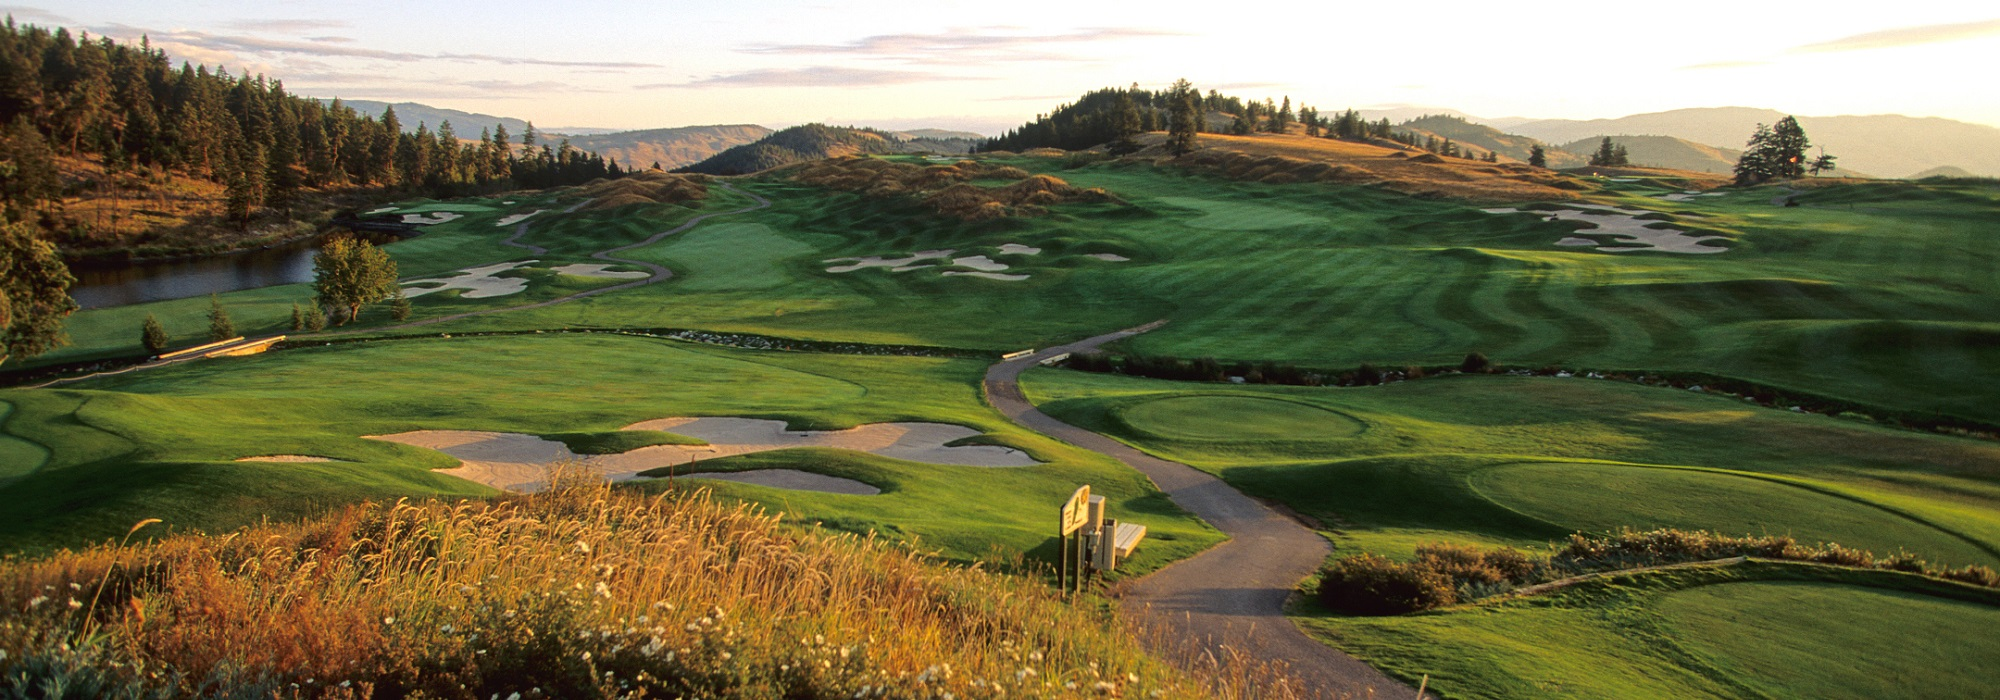 PredatorRidge-SignatureShot1